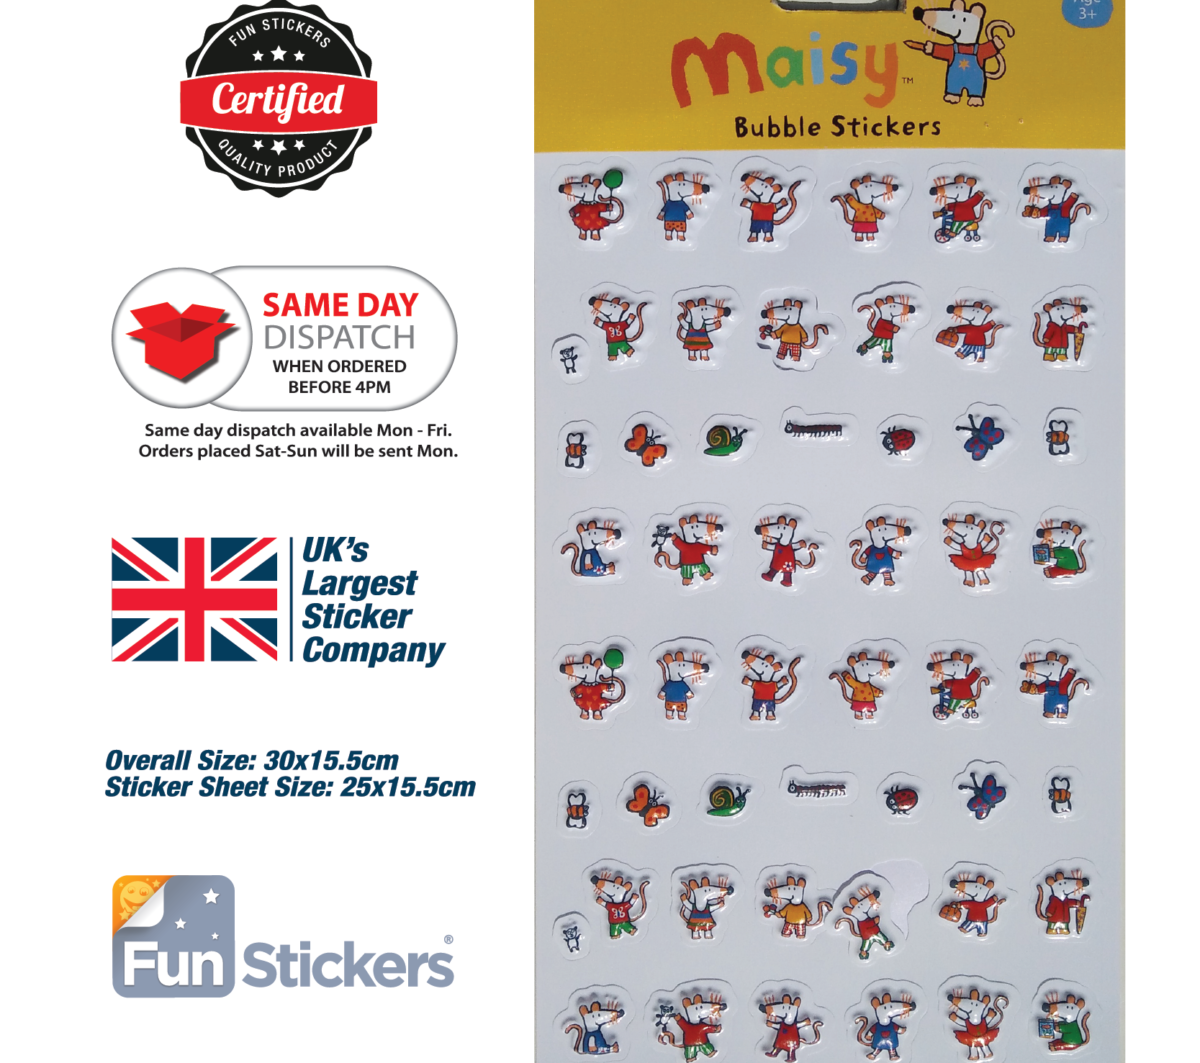 numbers to letters boofle stickers boxed 100 labels 1513 sticker 1513